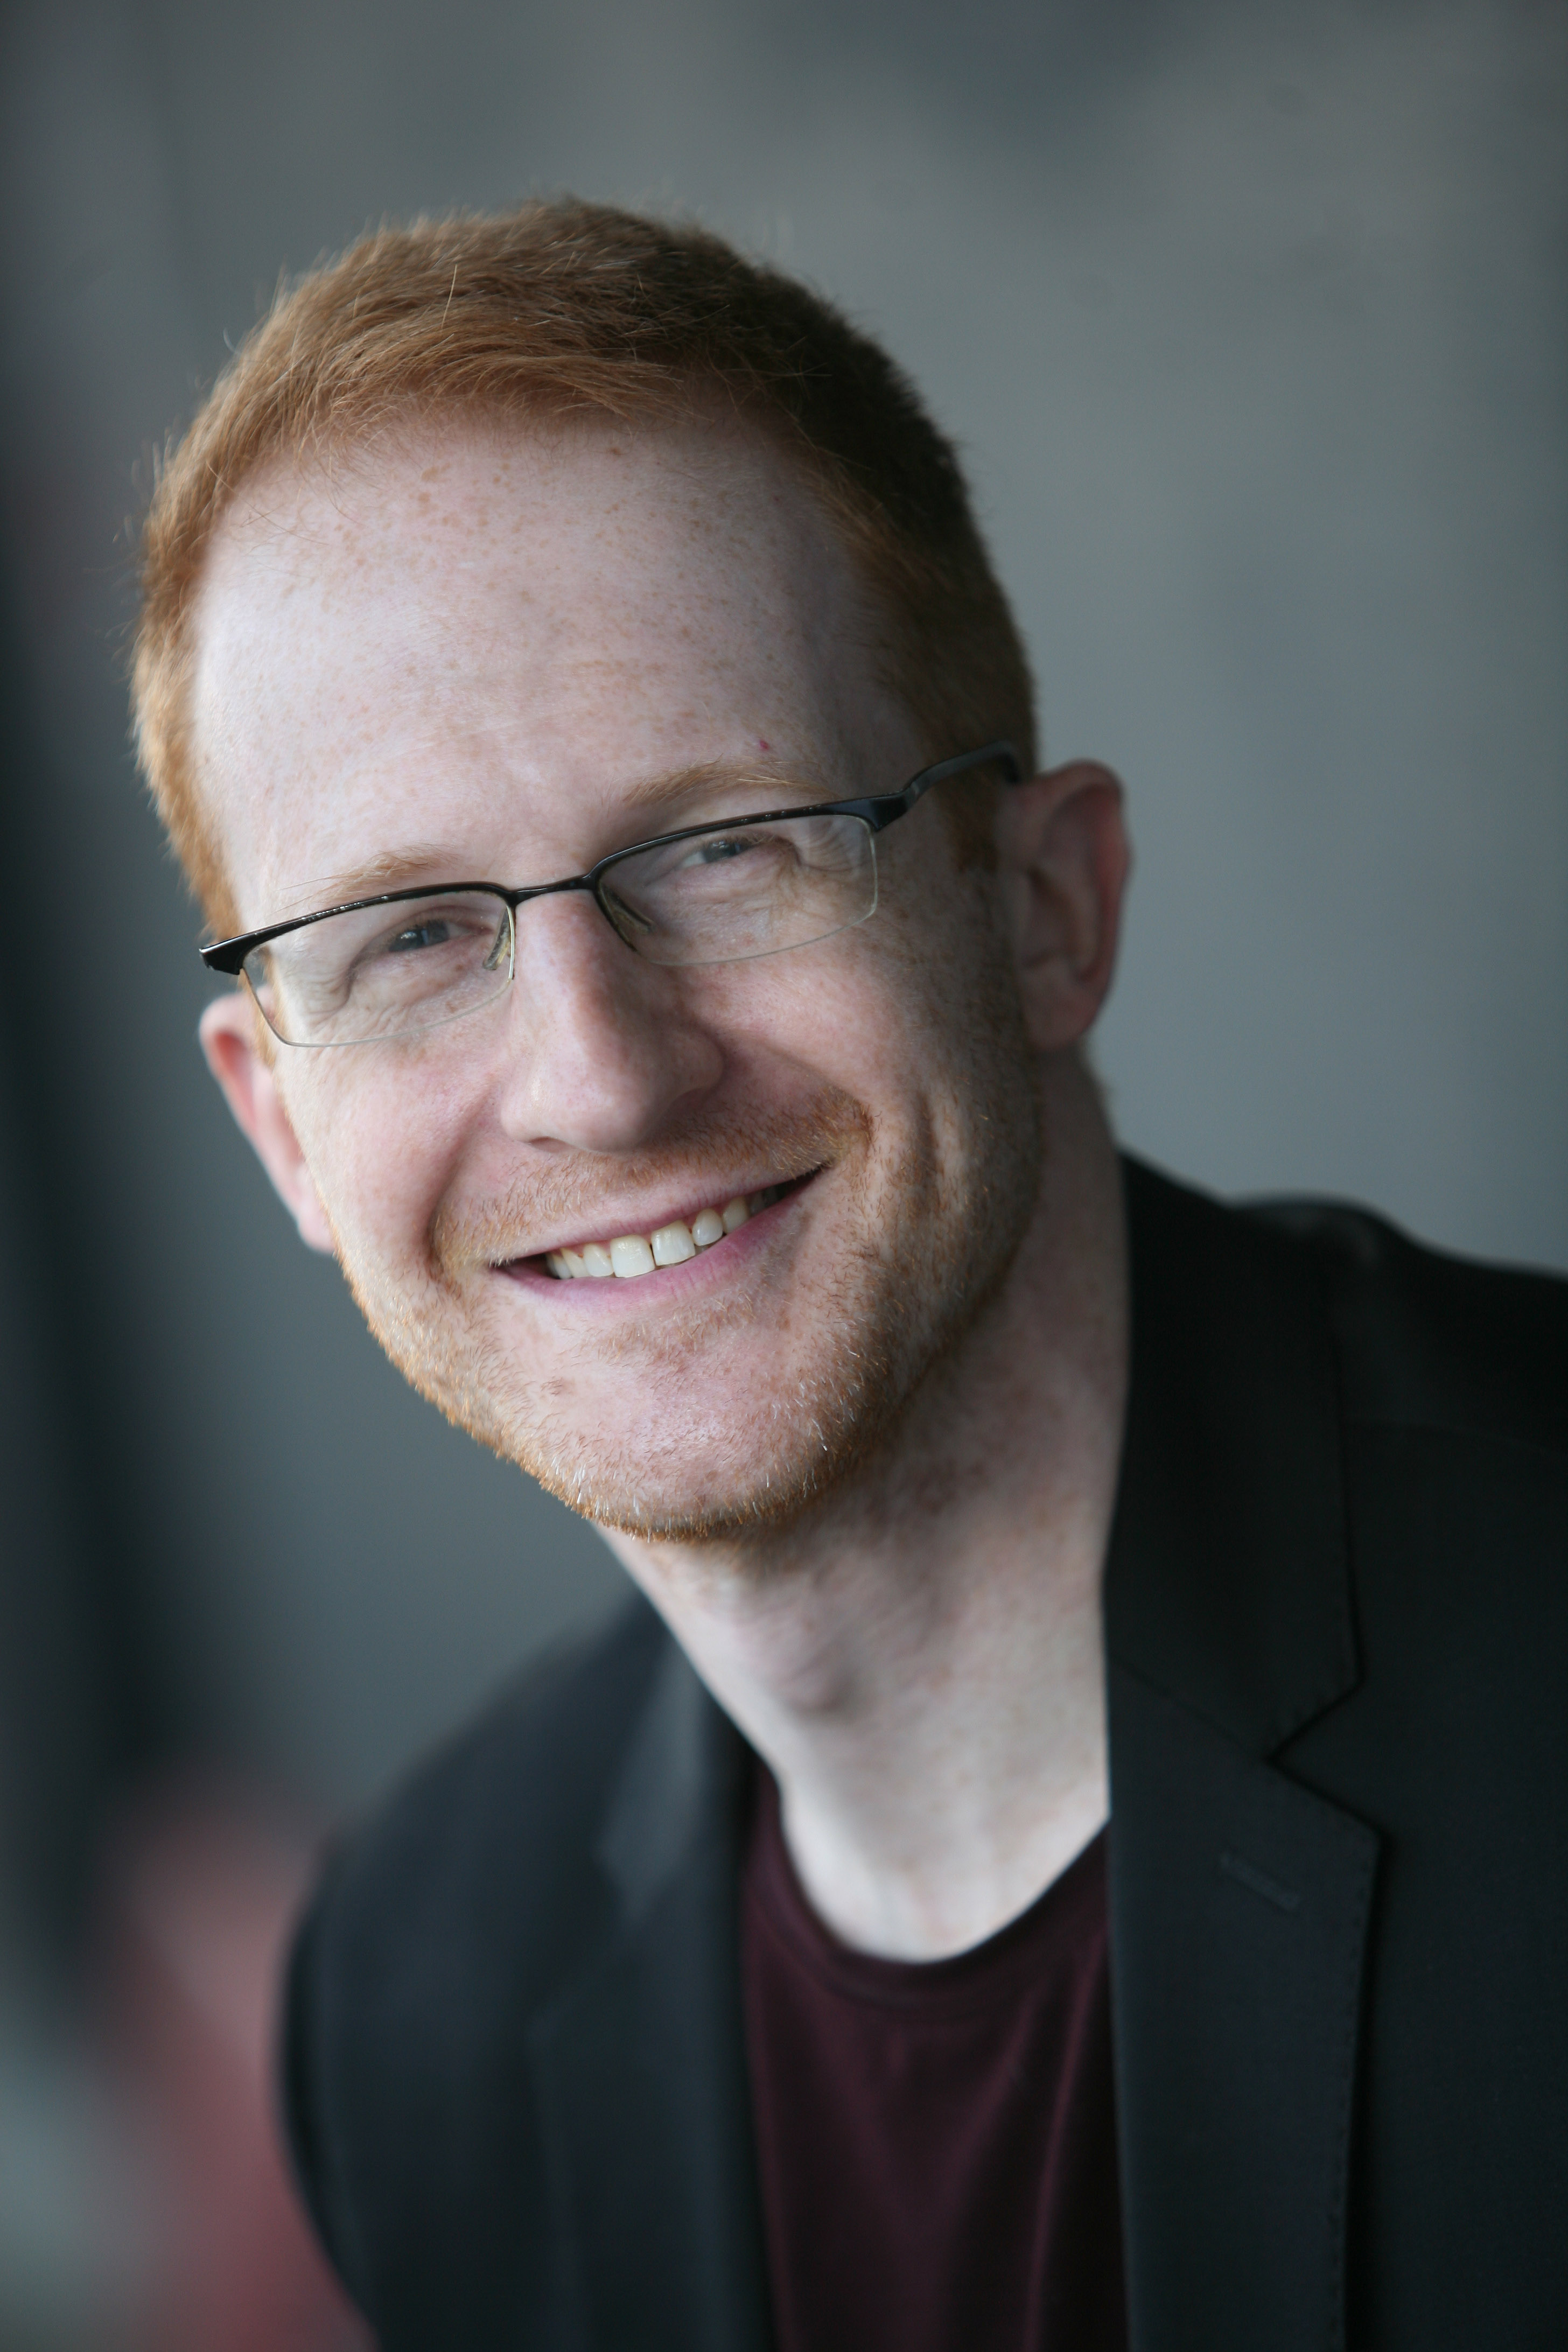 VIPcontacts Presents Comedian Steve Hofstetter